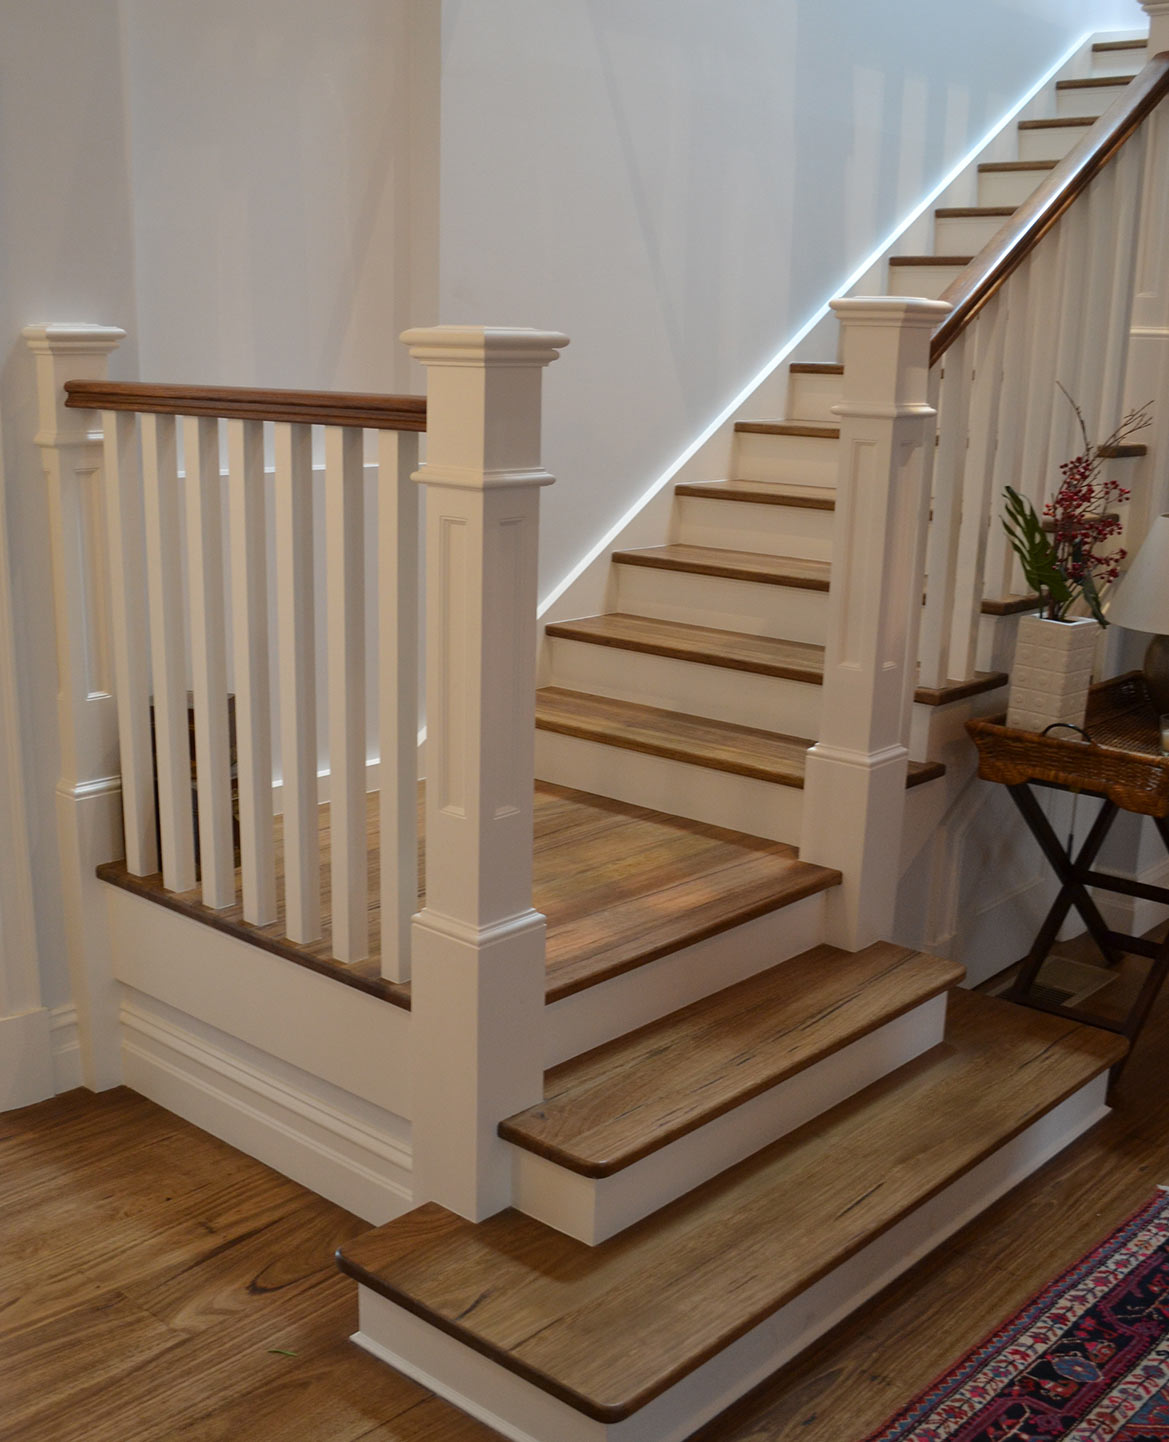 Inspirational Stairs Design: Hampton Style Stairs